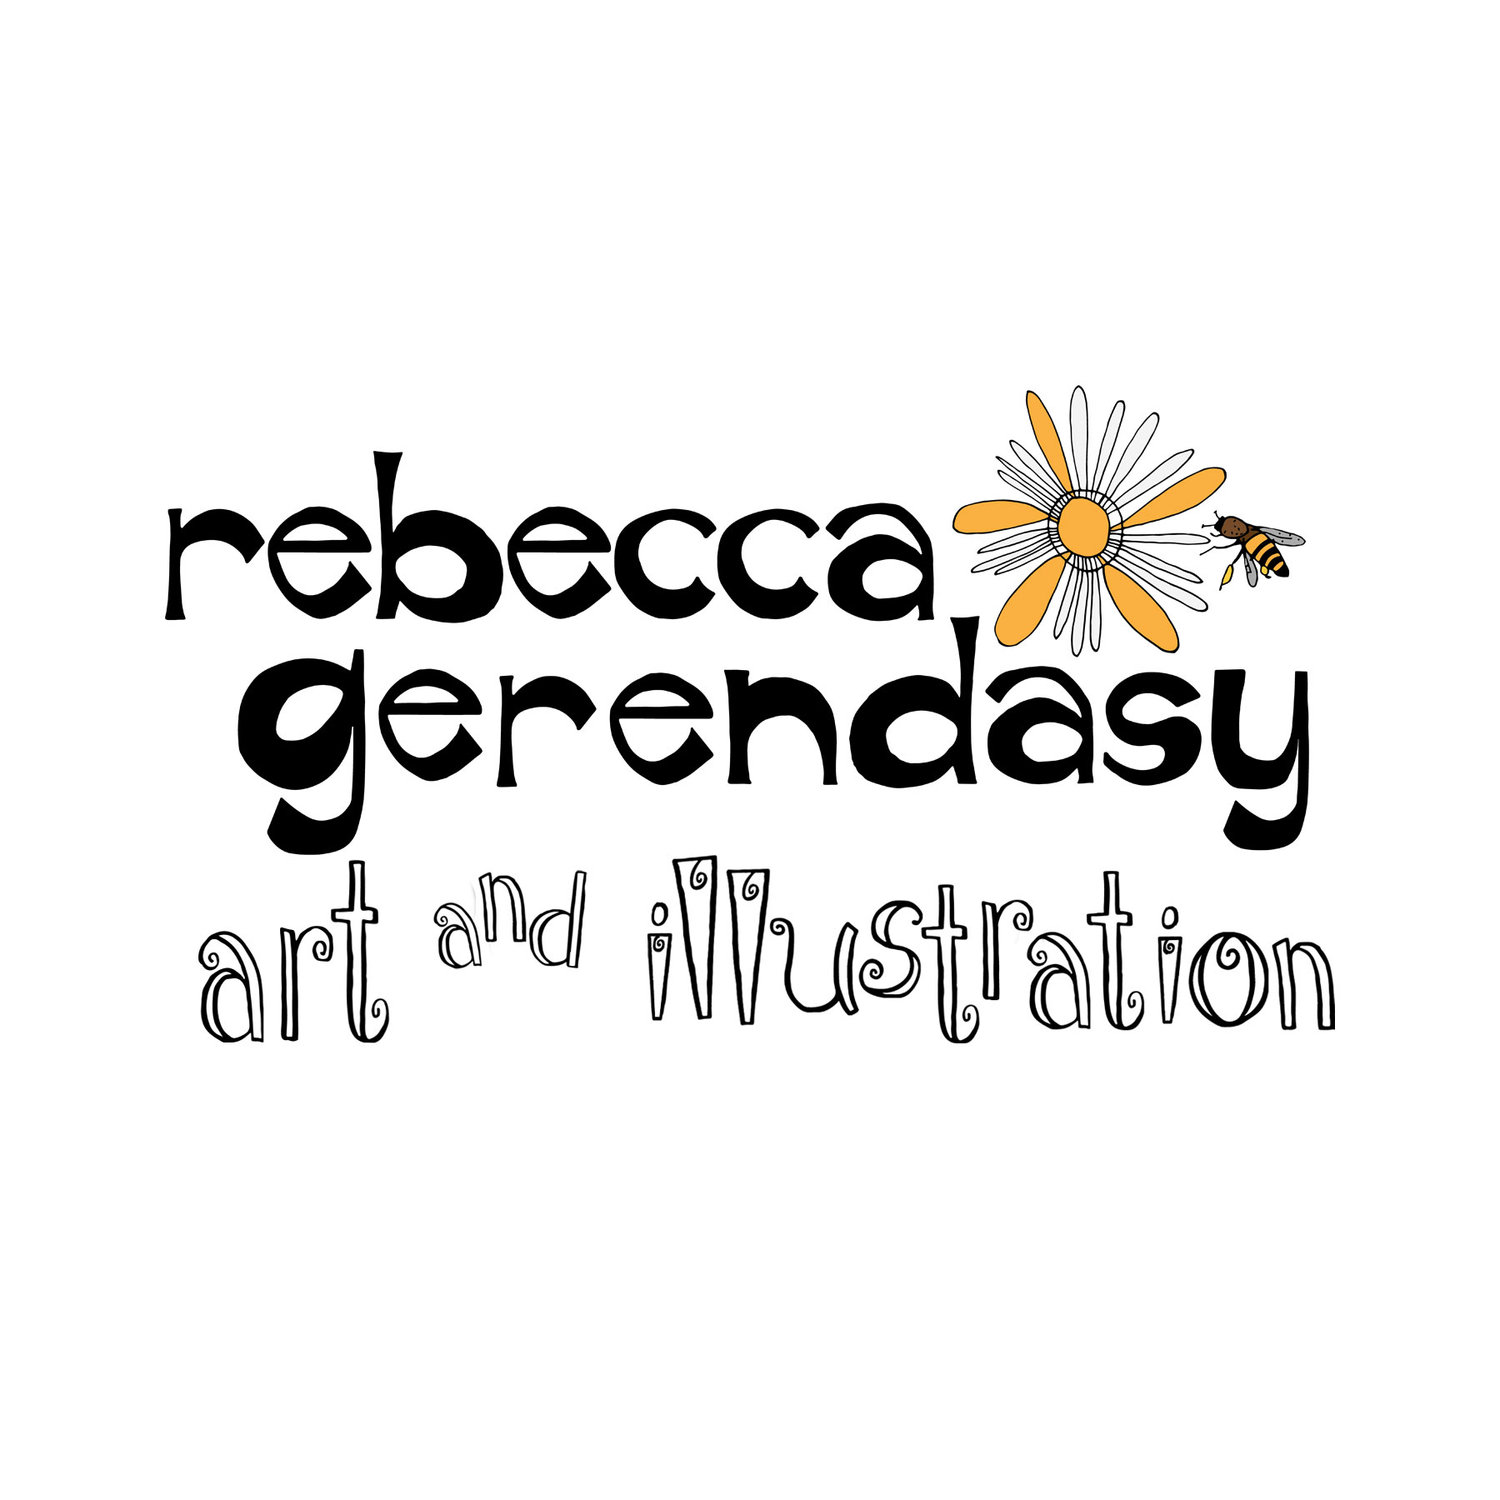 Rebecca Gerendasy Art & Illustration